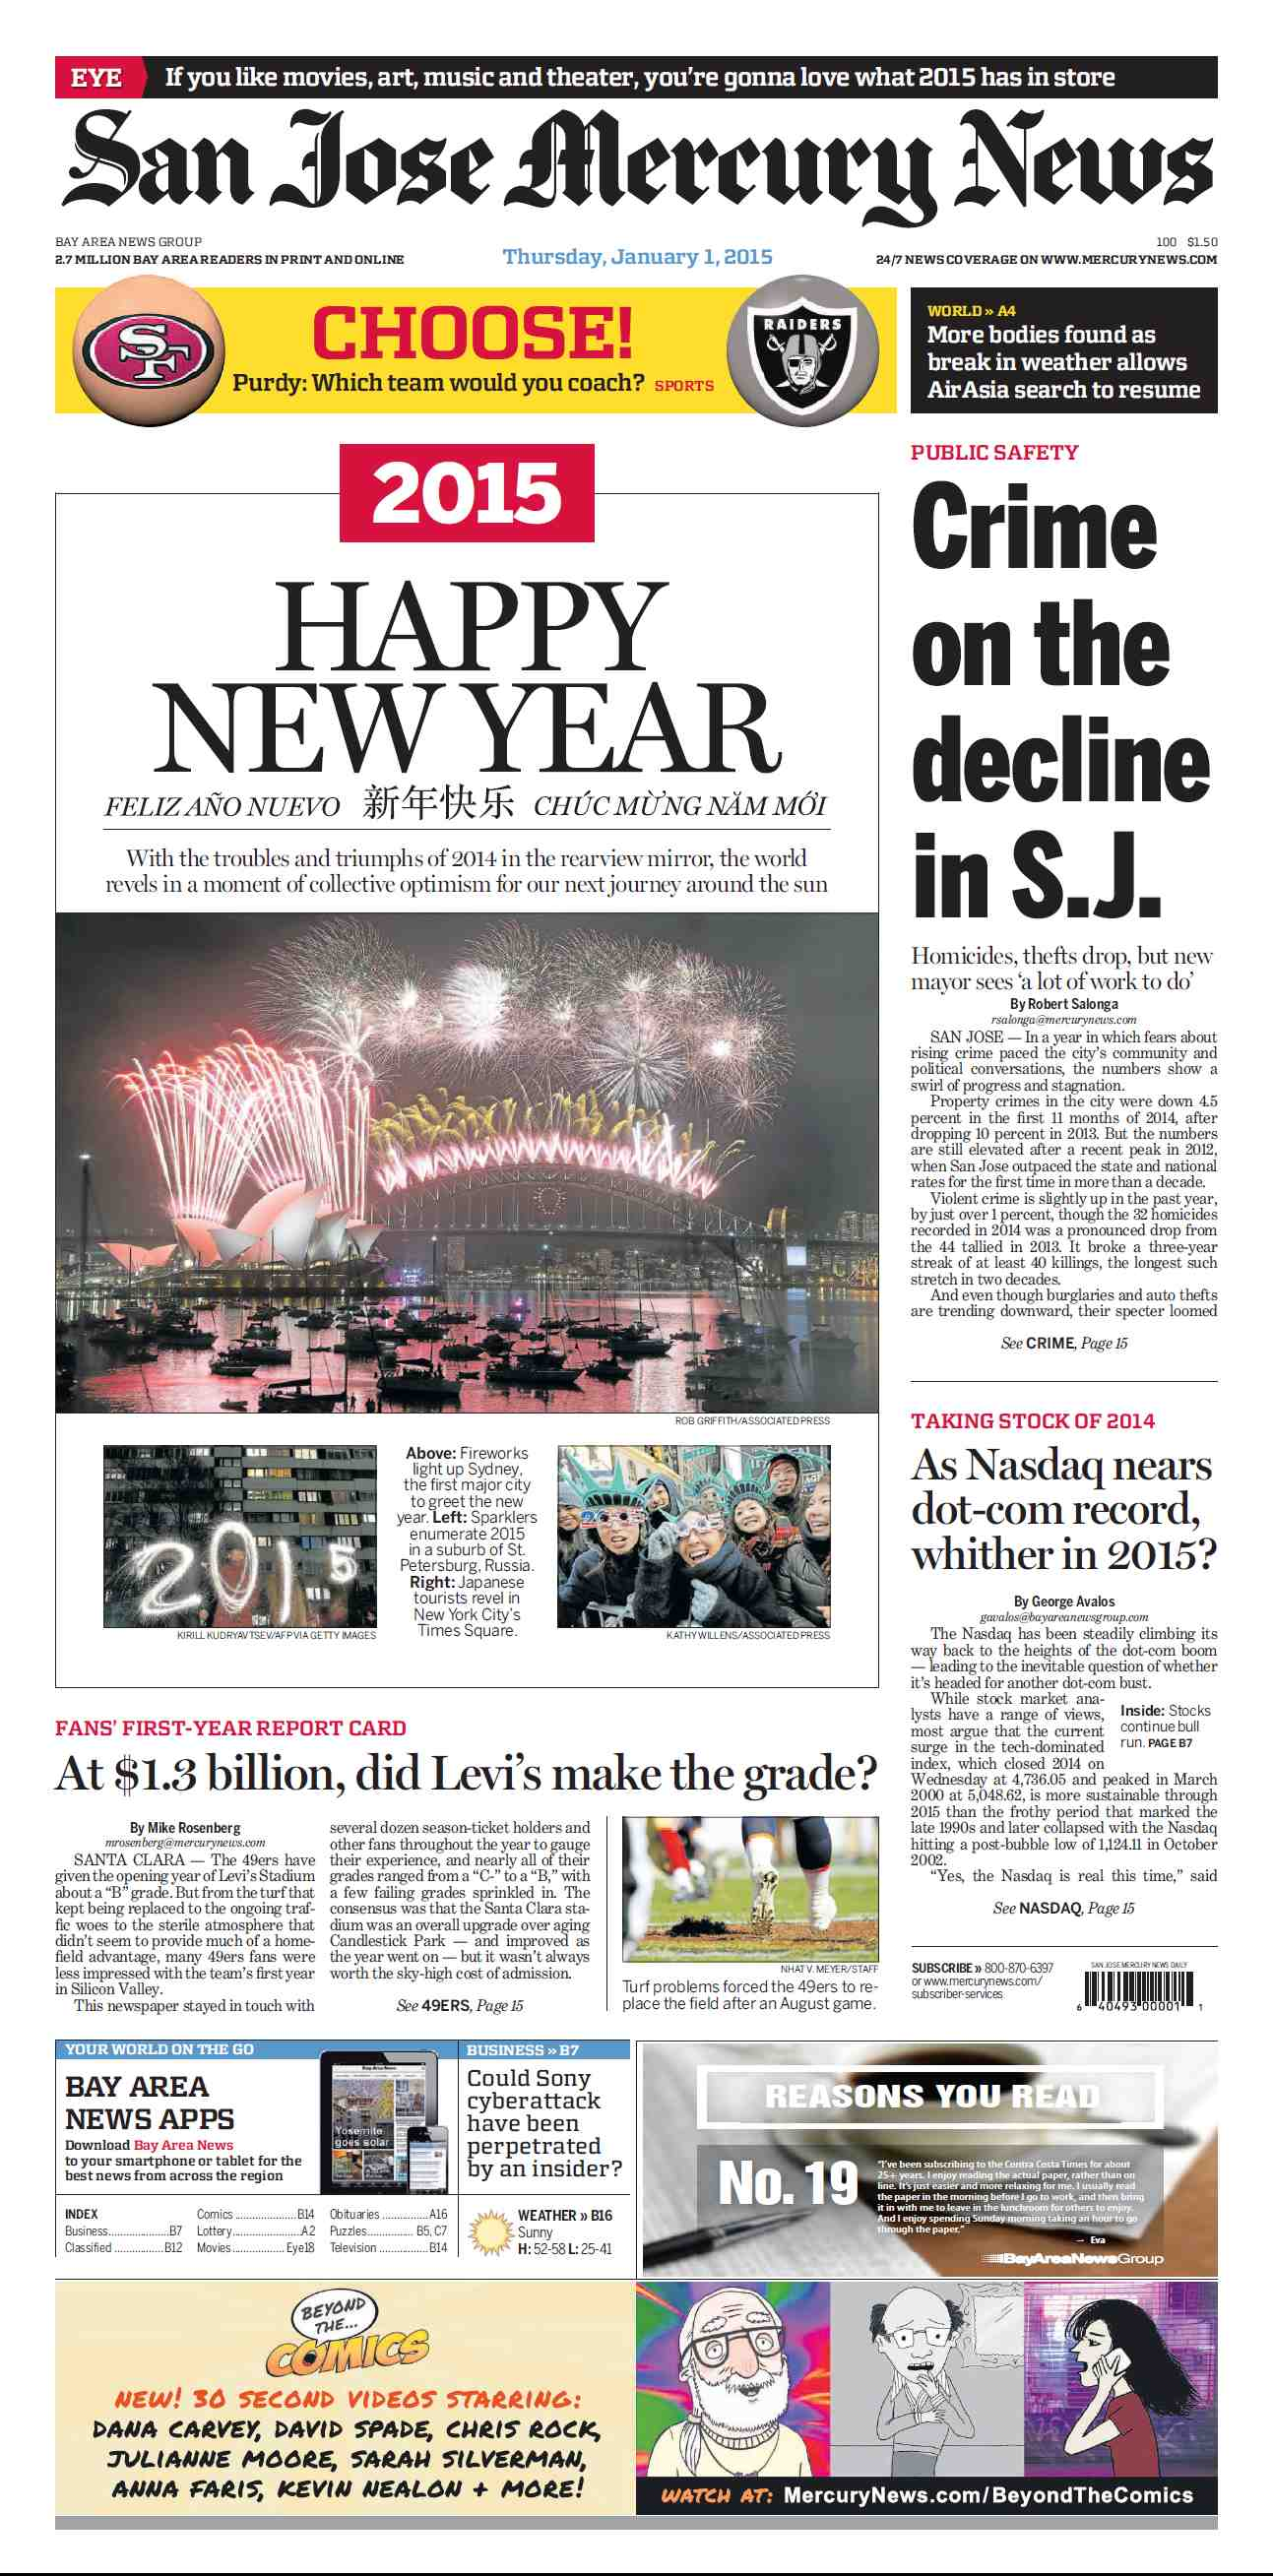 San Jose Mercury News - January 01, 2015 free download